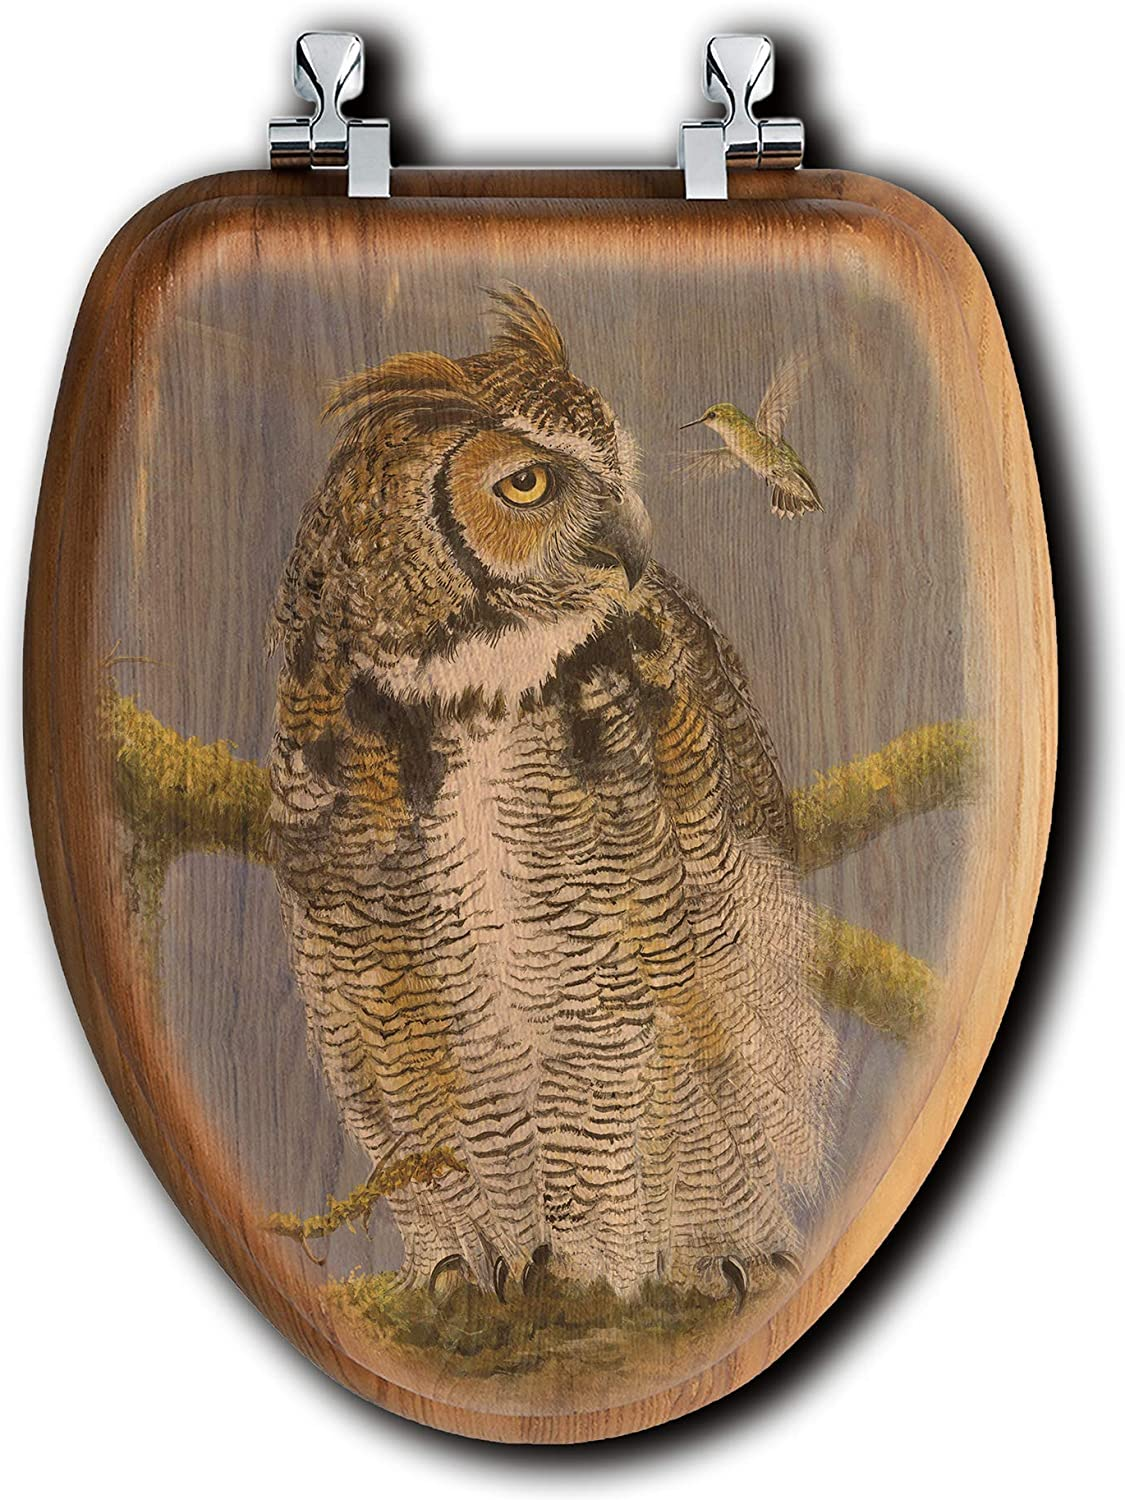 WGI-GALLERY TS-E-FOH Fearless Owl Hummingbird Seat Max 89% OFF Toilet Clearance SALE! Limited time!